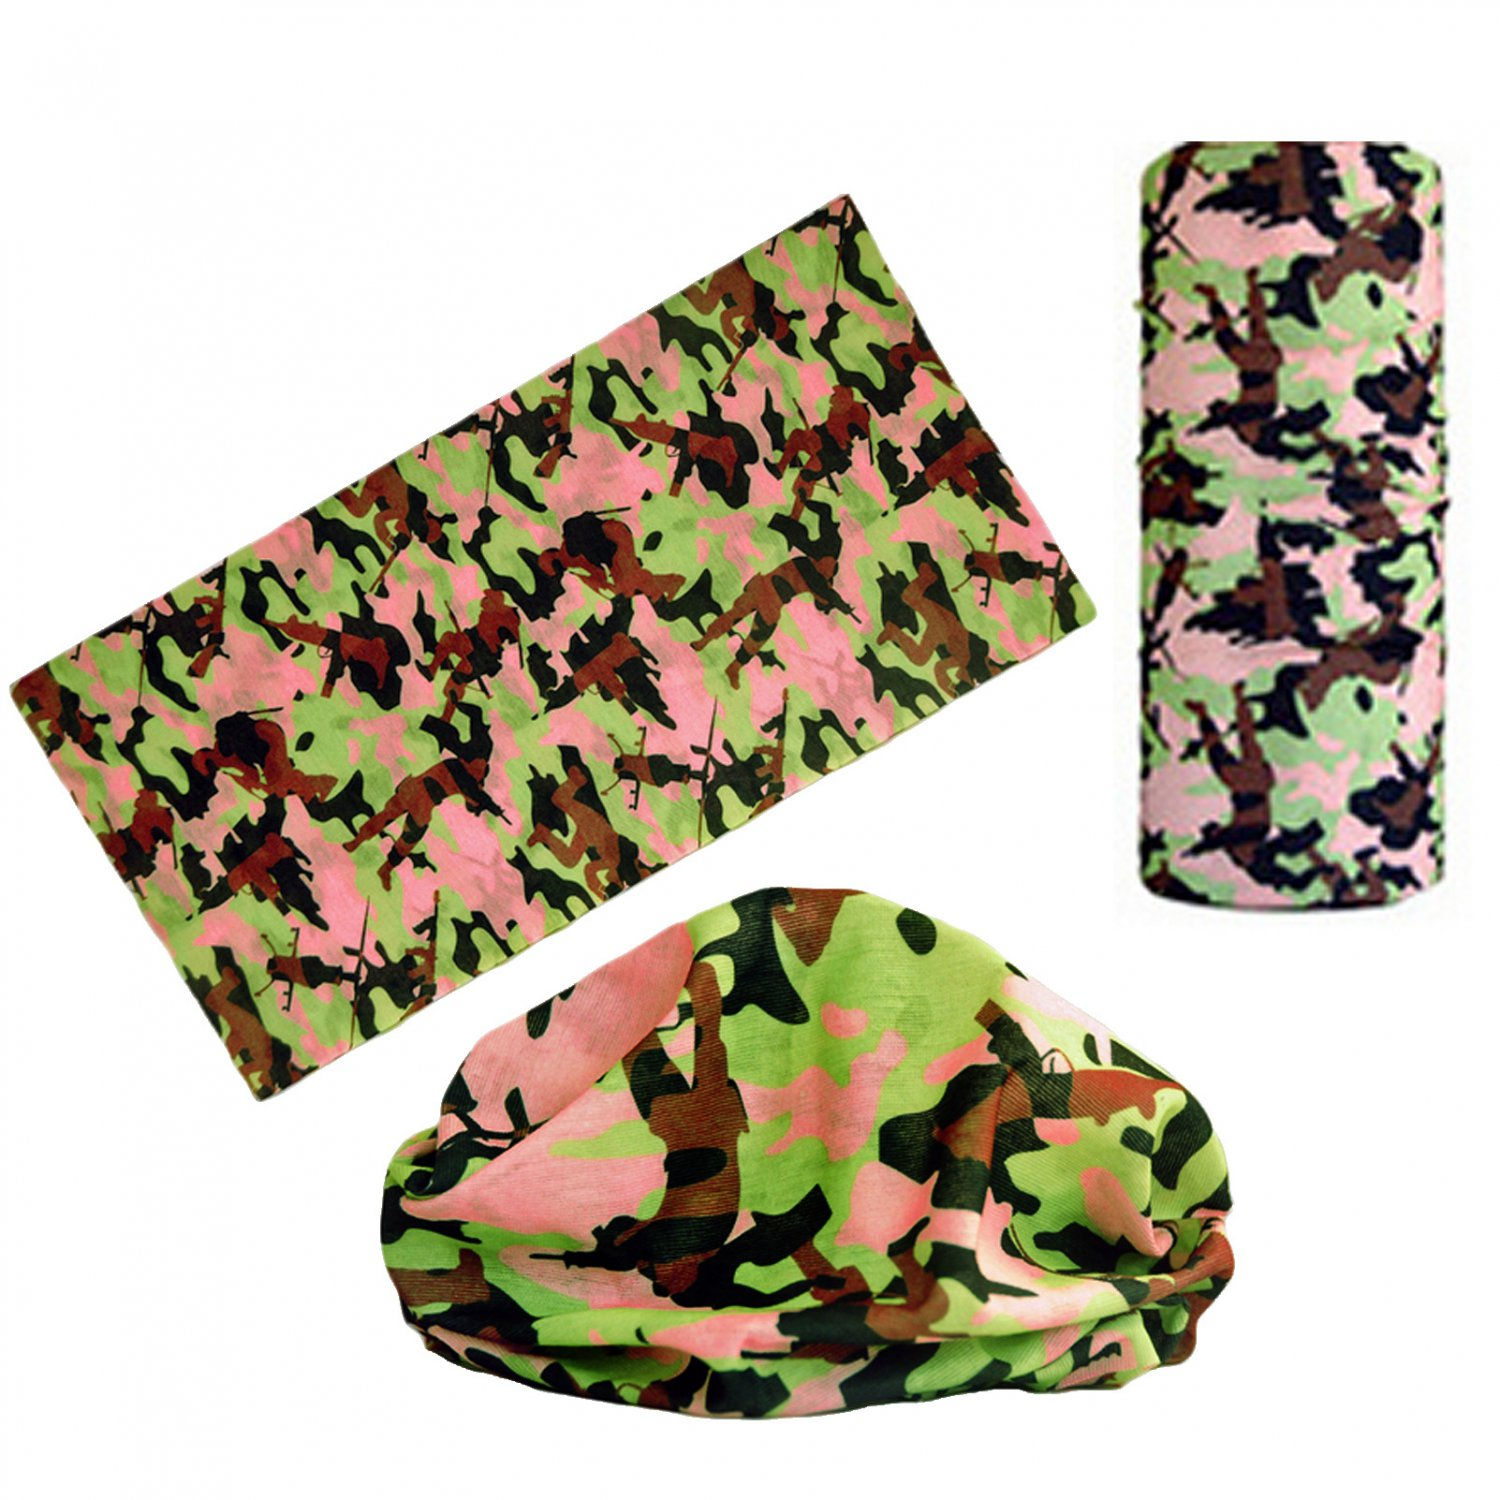 Pink Brown Gray Camouflage Adult Women's Men's Cycling Hiking Scarf Bandana Bandanna Gear #13300